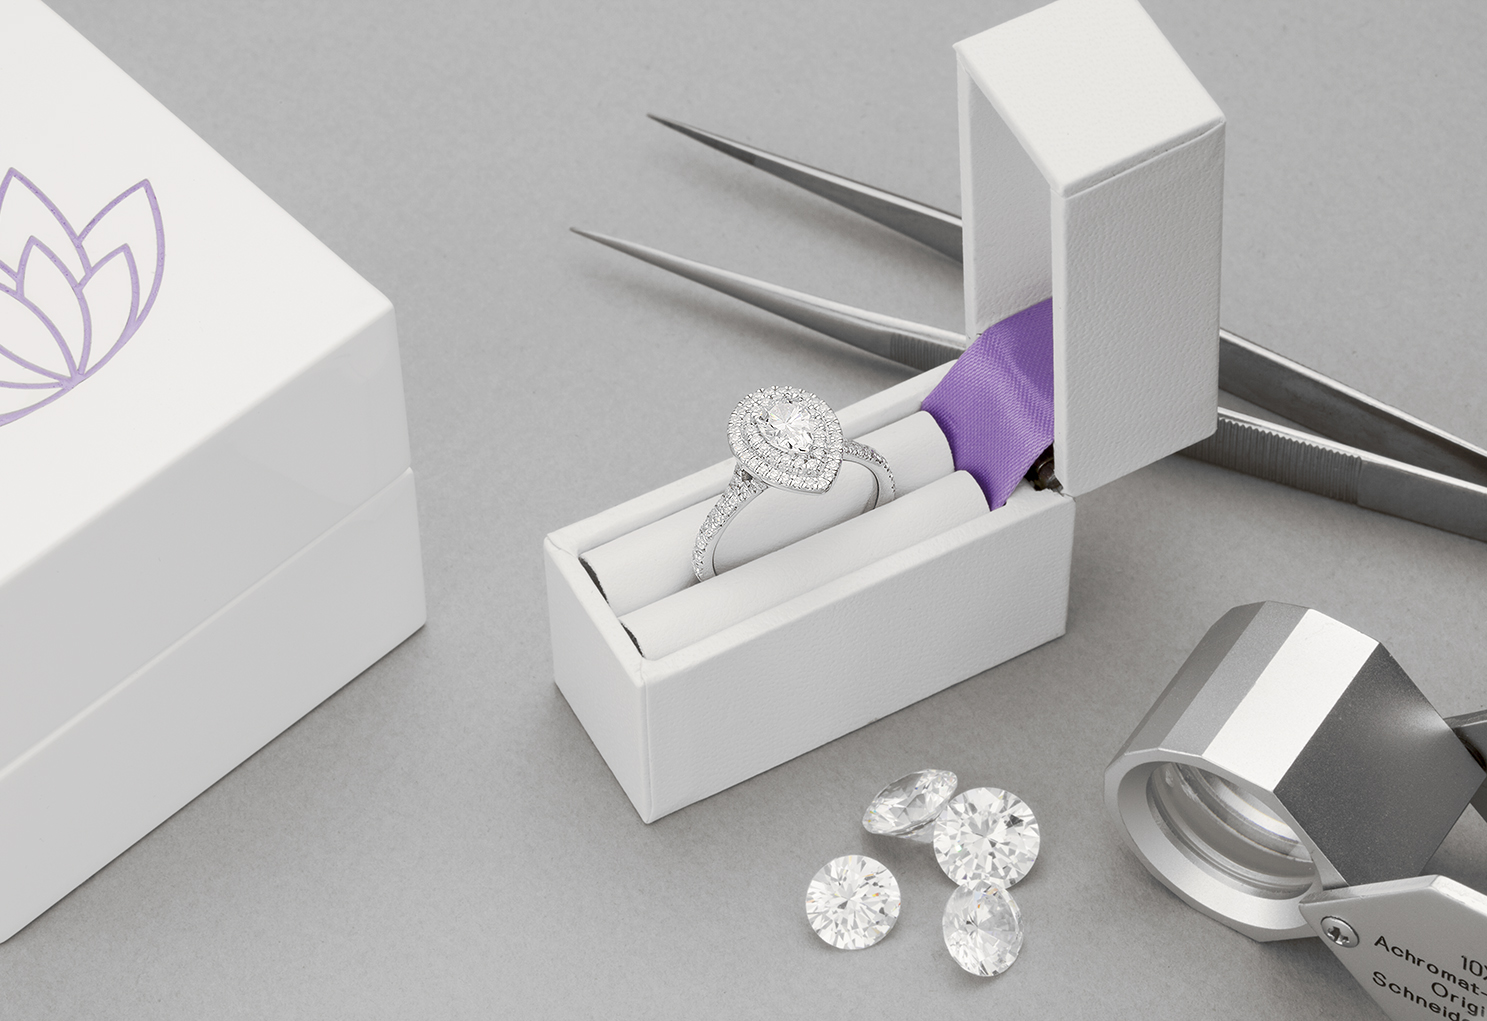 Double halo engagement ring in pocket box